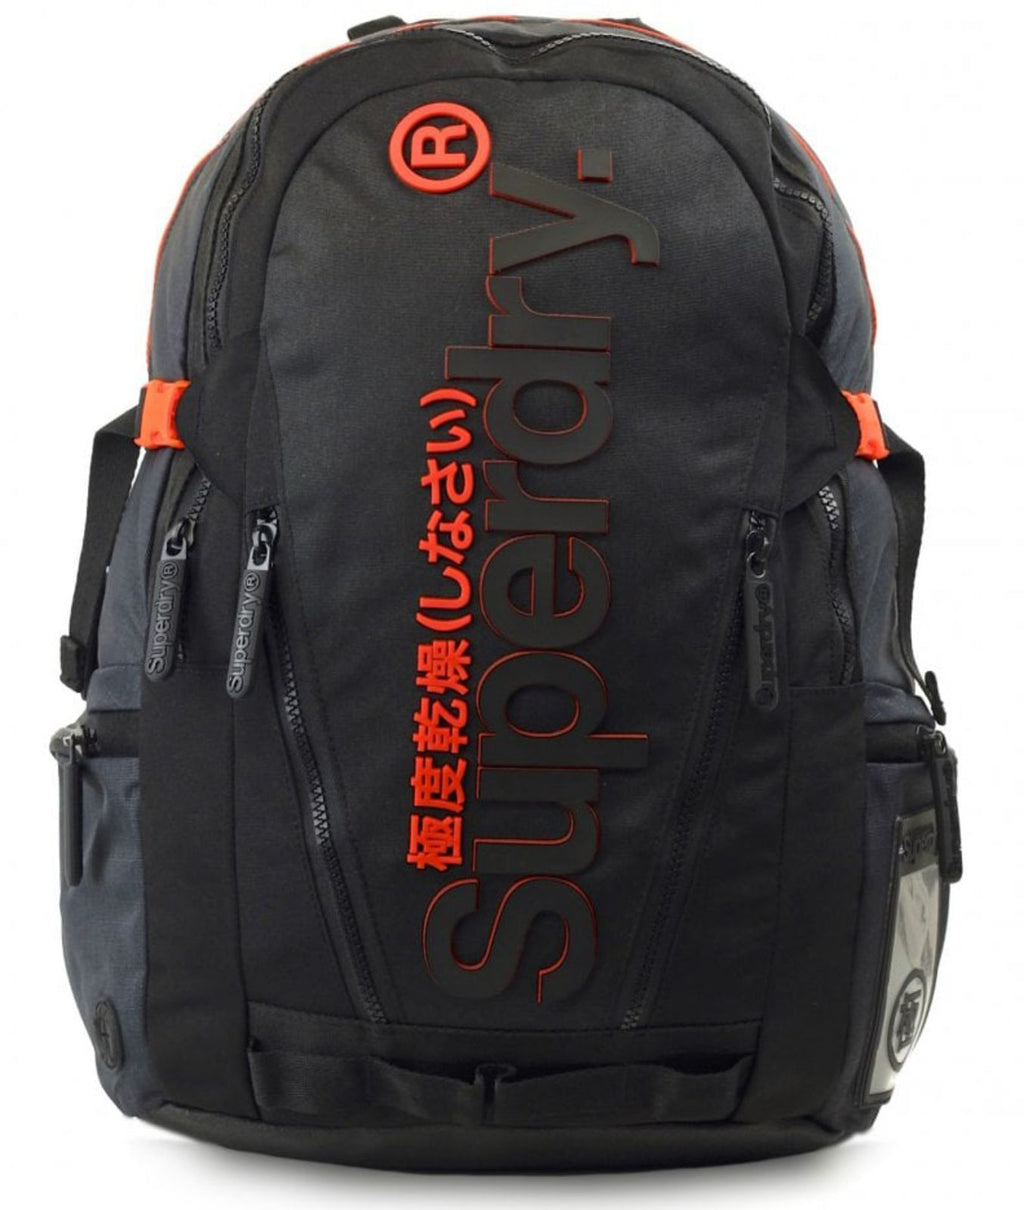 Superdry 2 Tone Tarp Backpack Bag Black